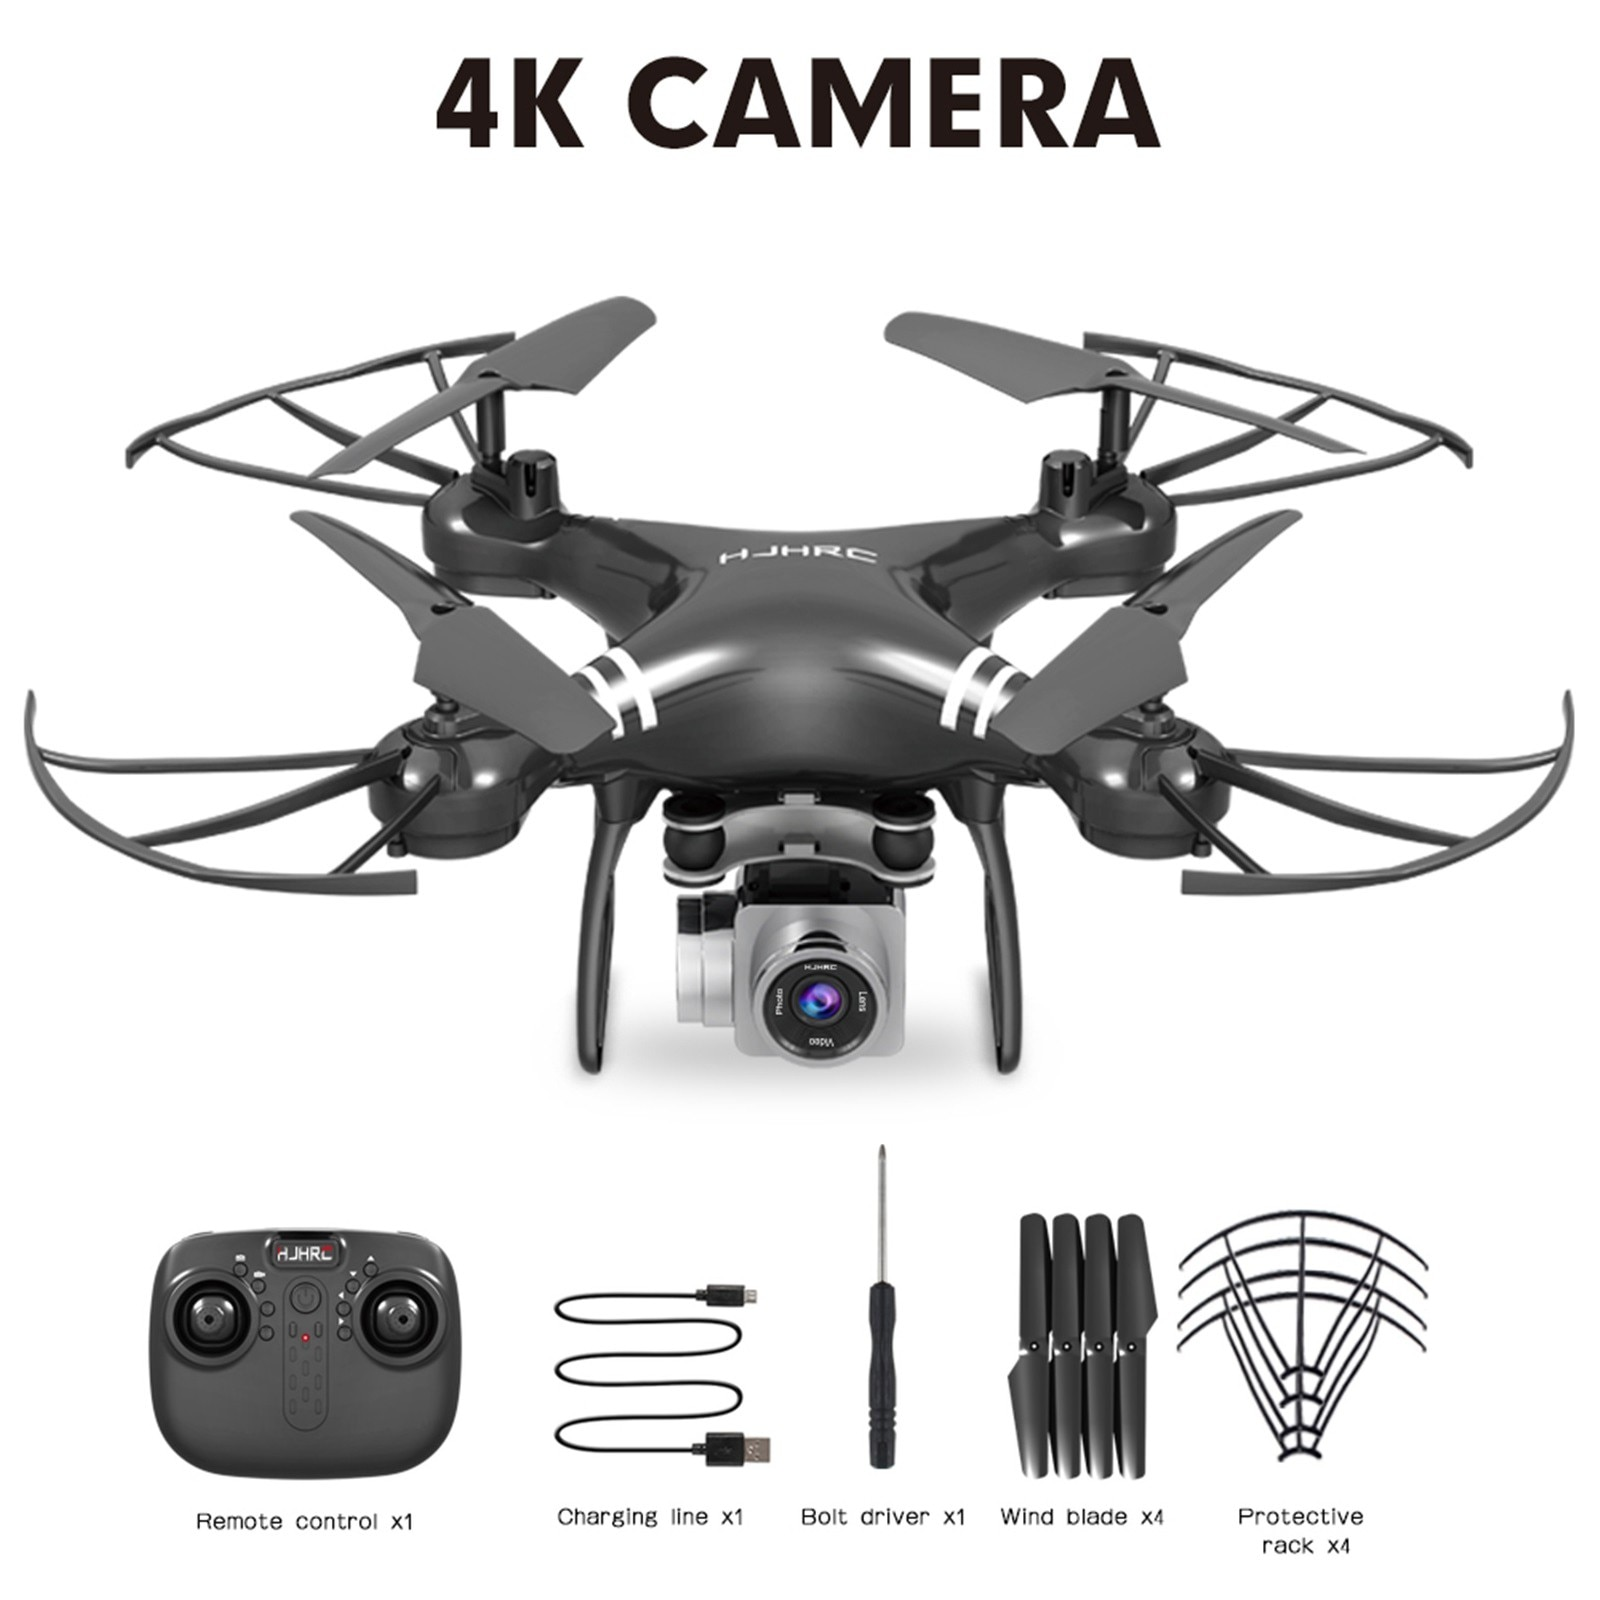 H6e3e4a5589244aa98f7438a532ccddf9y - Hjhrc Four-axis Aerial Photography Aircraft Drone With Camera Hd 4k Wifi Fpv Foldable Drone Height Holding Headless Quadcopter